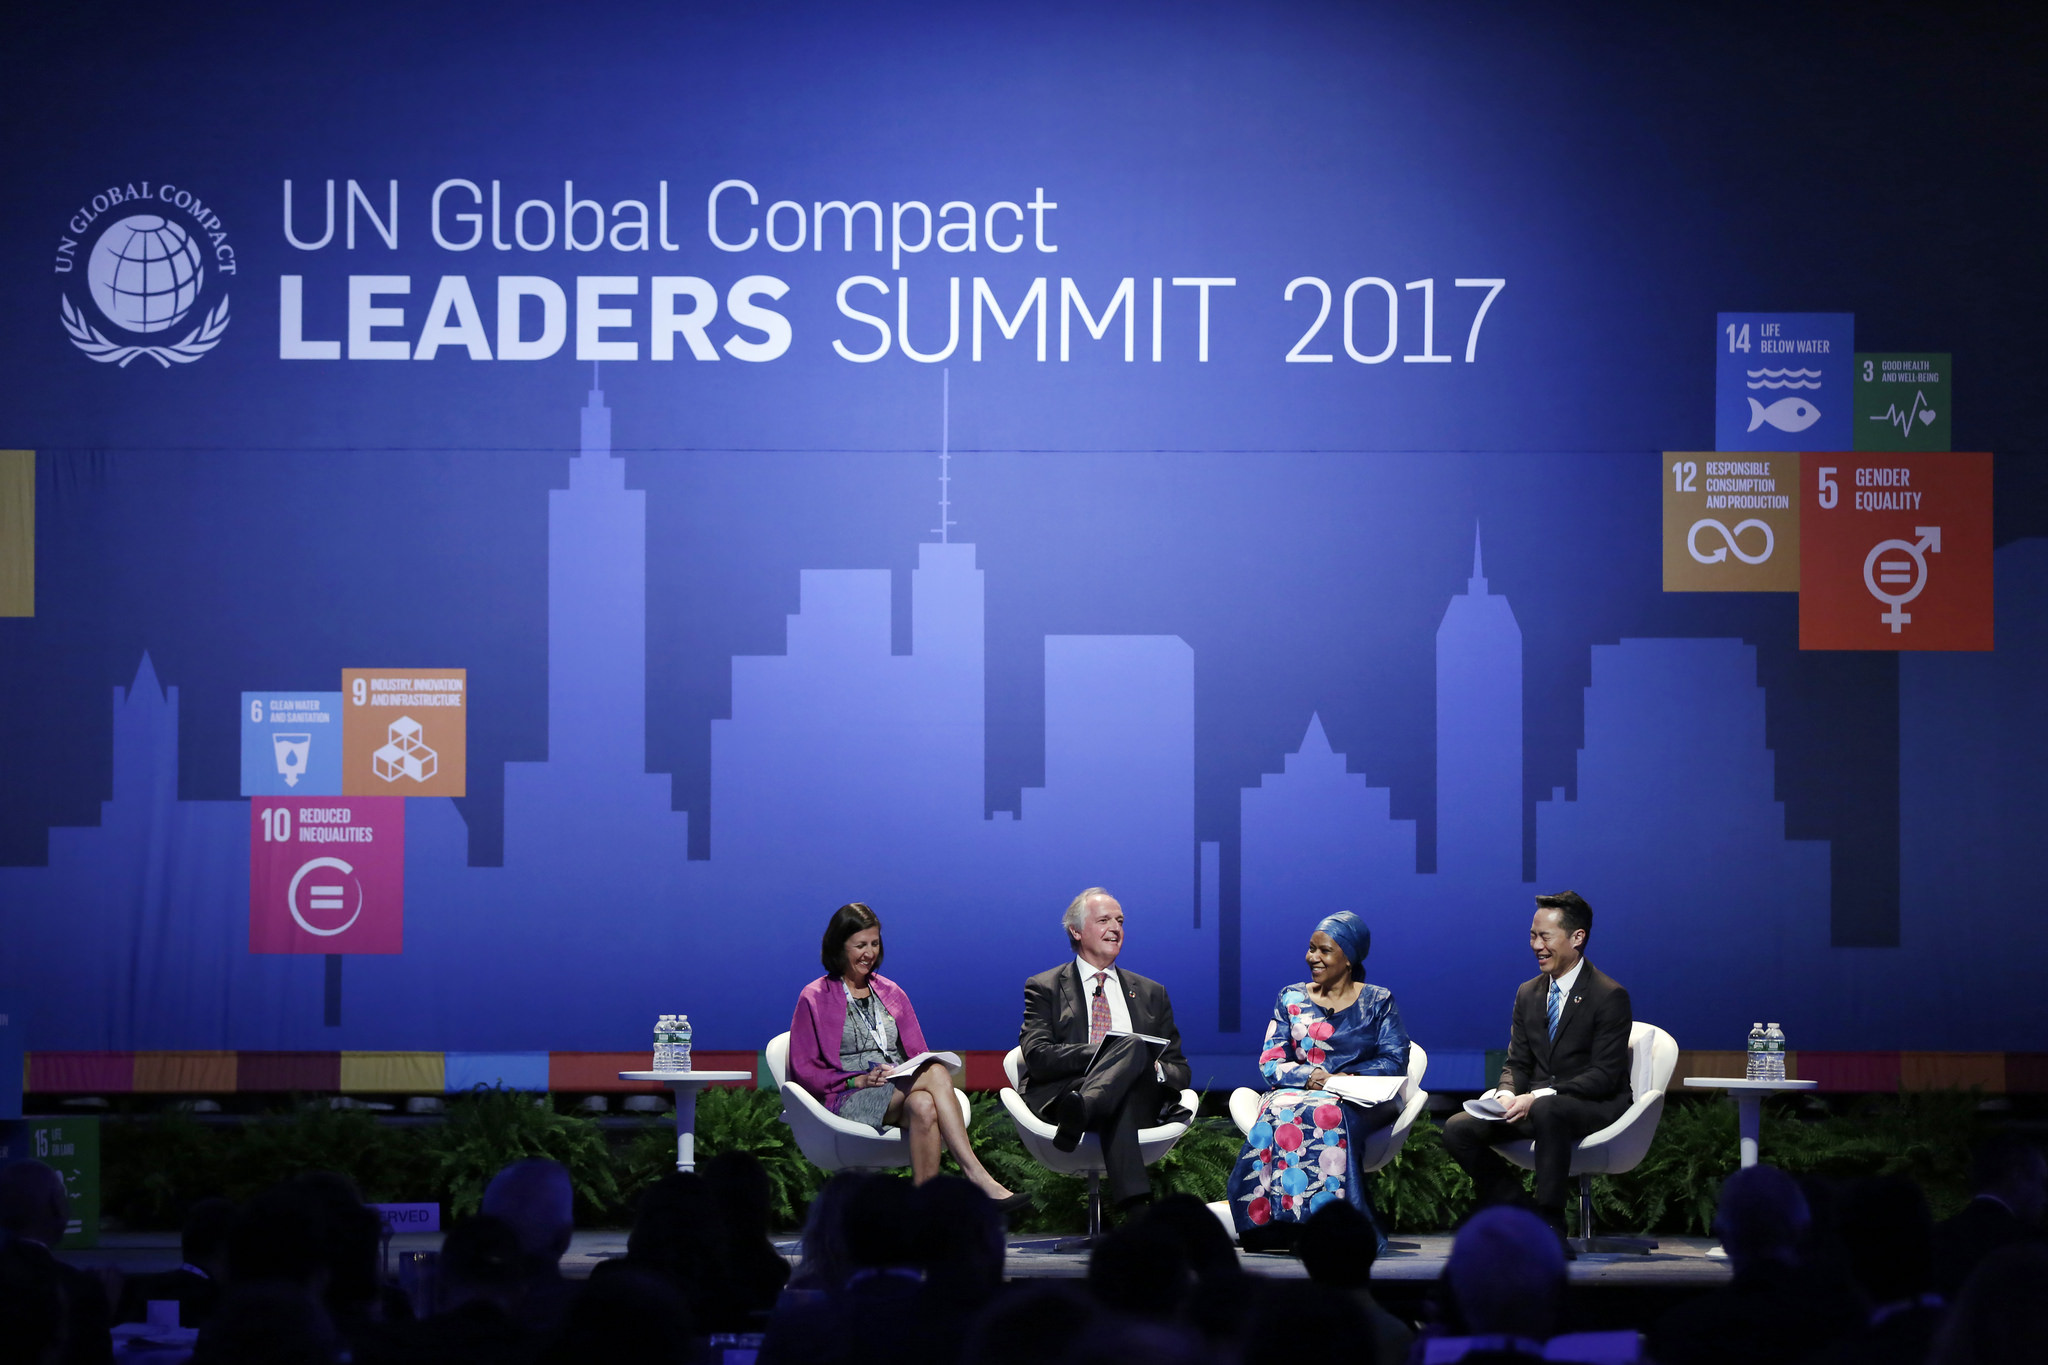 GA72 - UN Global Compact Leaders Summit, United Nations, New York, NY, USA, September 21, 2017   © Courtesy of Ryan Brown/UN Women/Flickr.